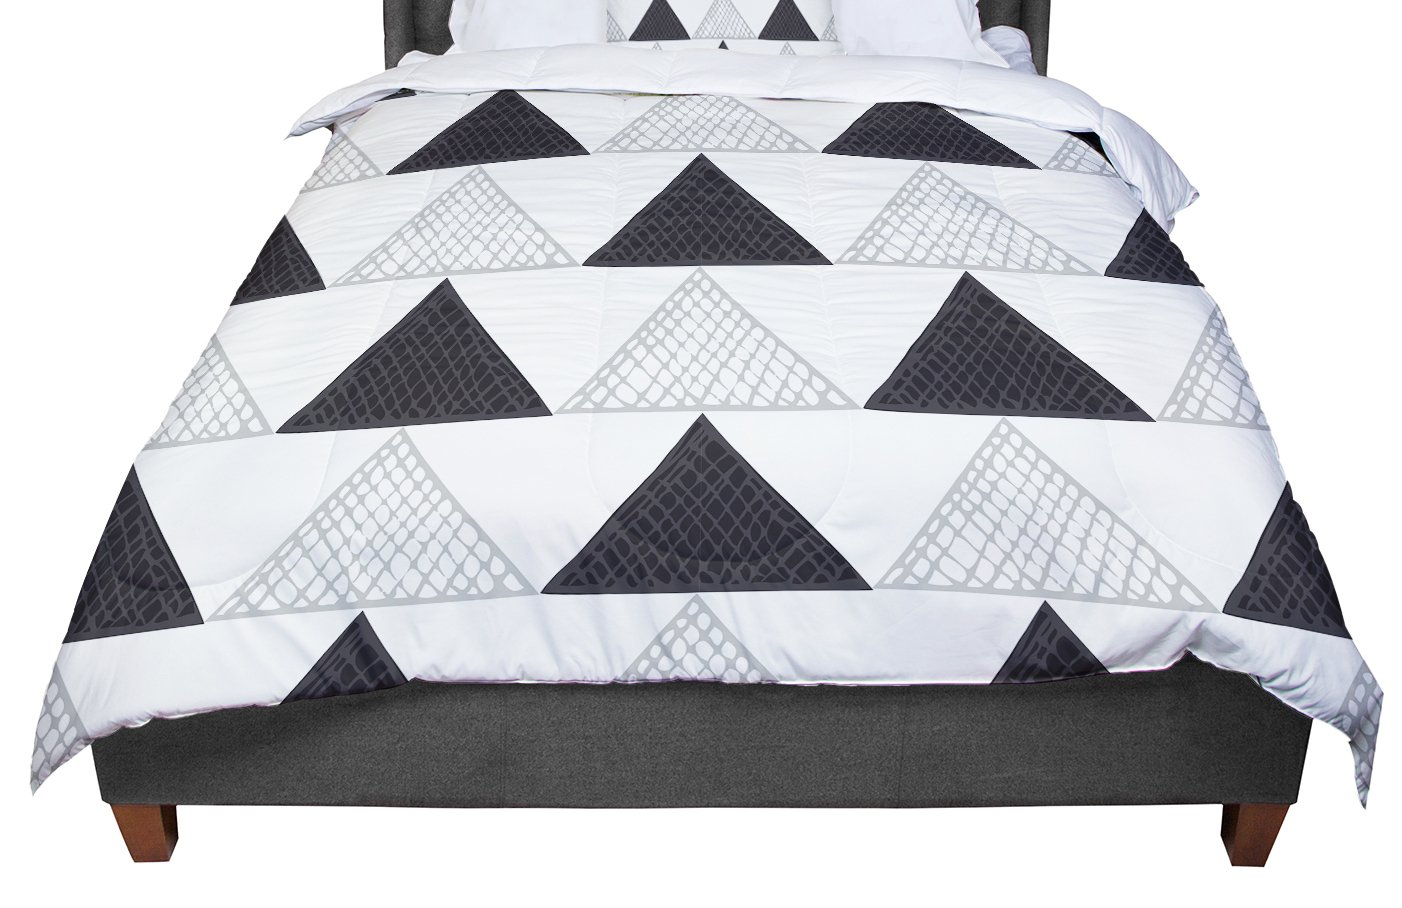 KESS InHouse Laurie Baars 'Textured Triangles' Geometric Abstract King / Cal King Comforter, 104' X 88'